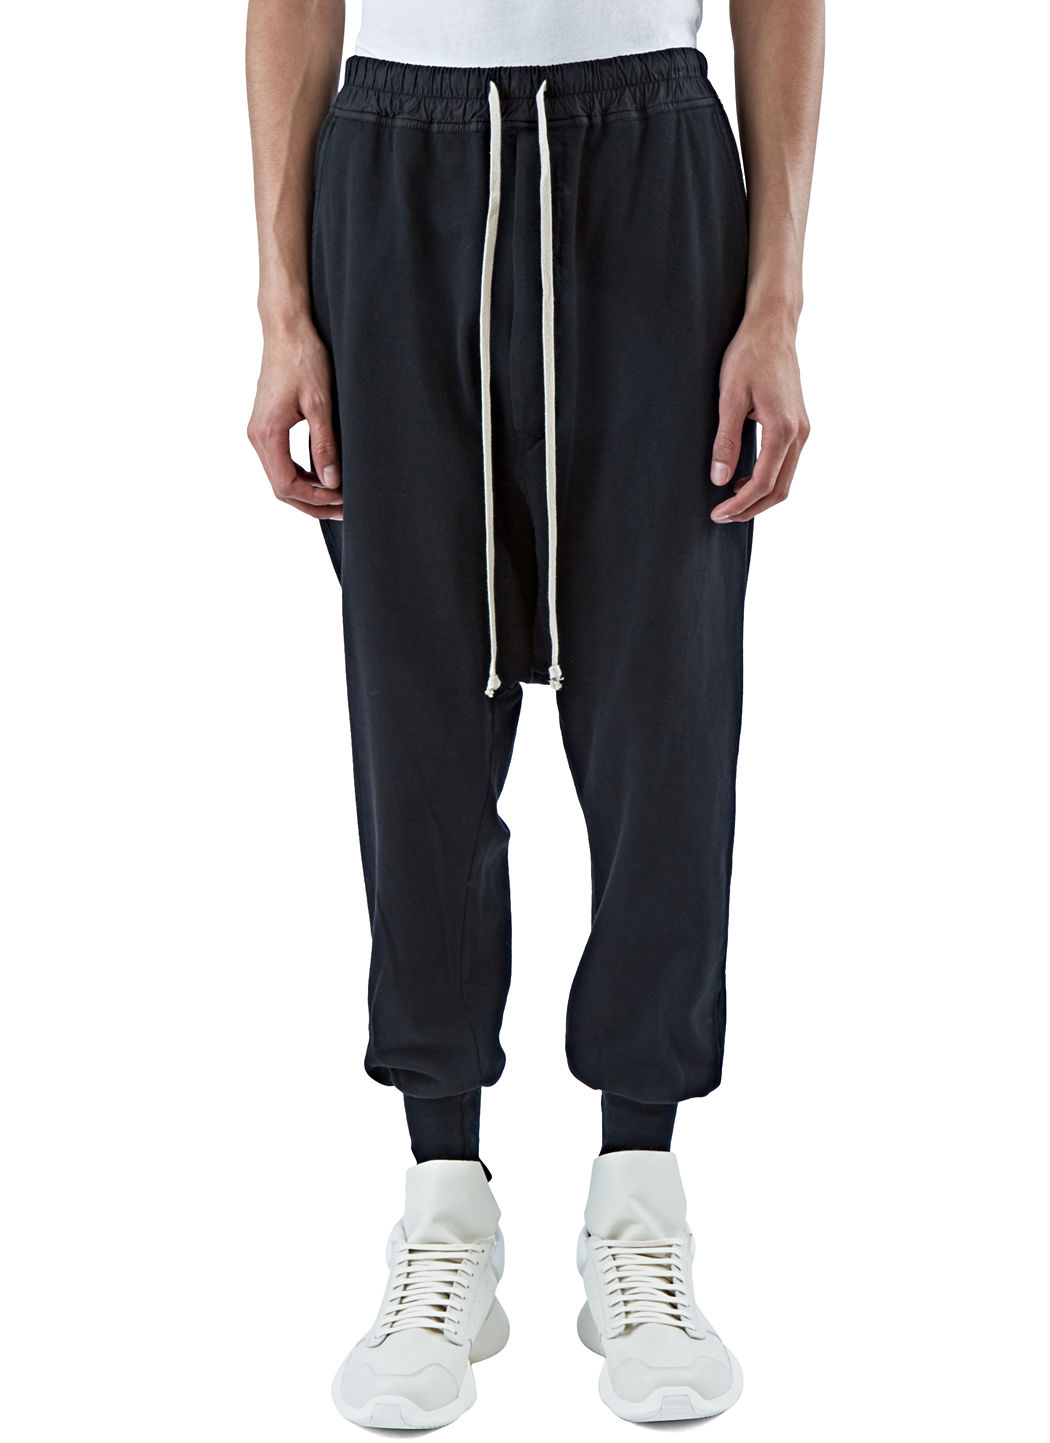 drawstring track pants - Grey Rick Owens Cheap Sale Amazing Price Knock Off Fast Express Pay With Paypal Cheap Price Reliable For Sale TJZHpGOA2